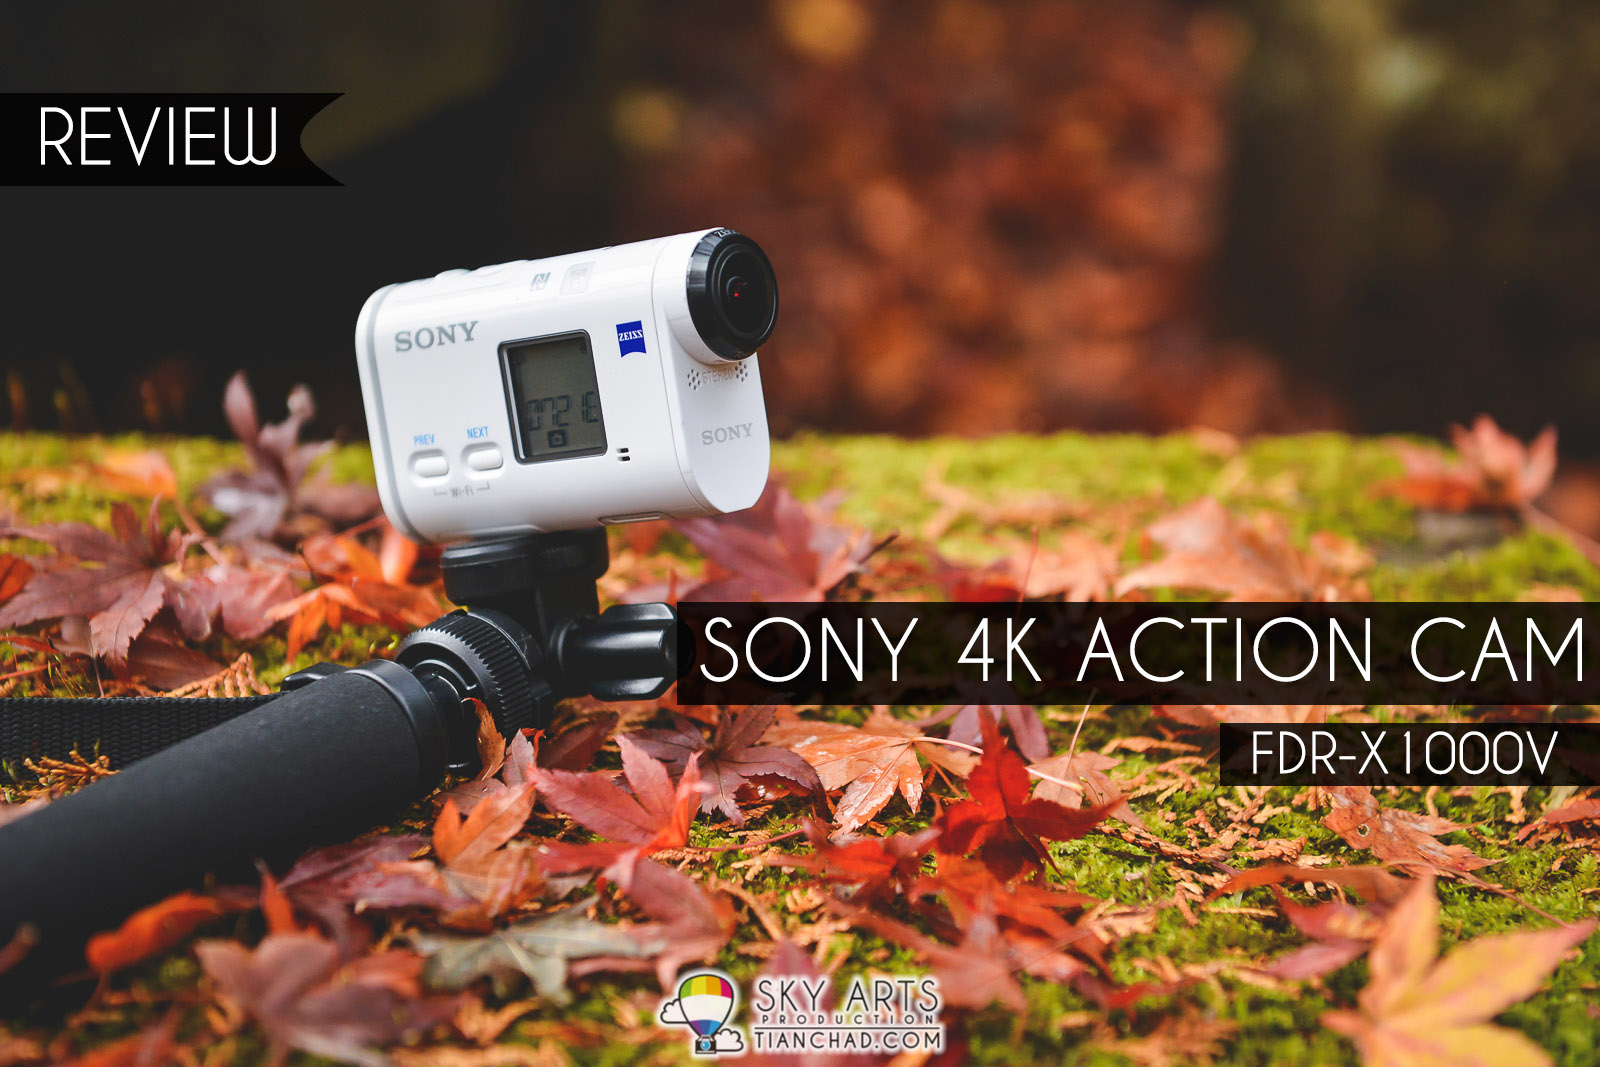 REVIEW] Sony 4K Action Cam FDR-X1000V (with videos)